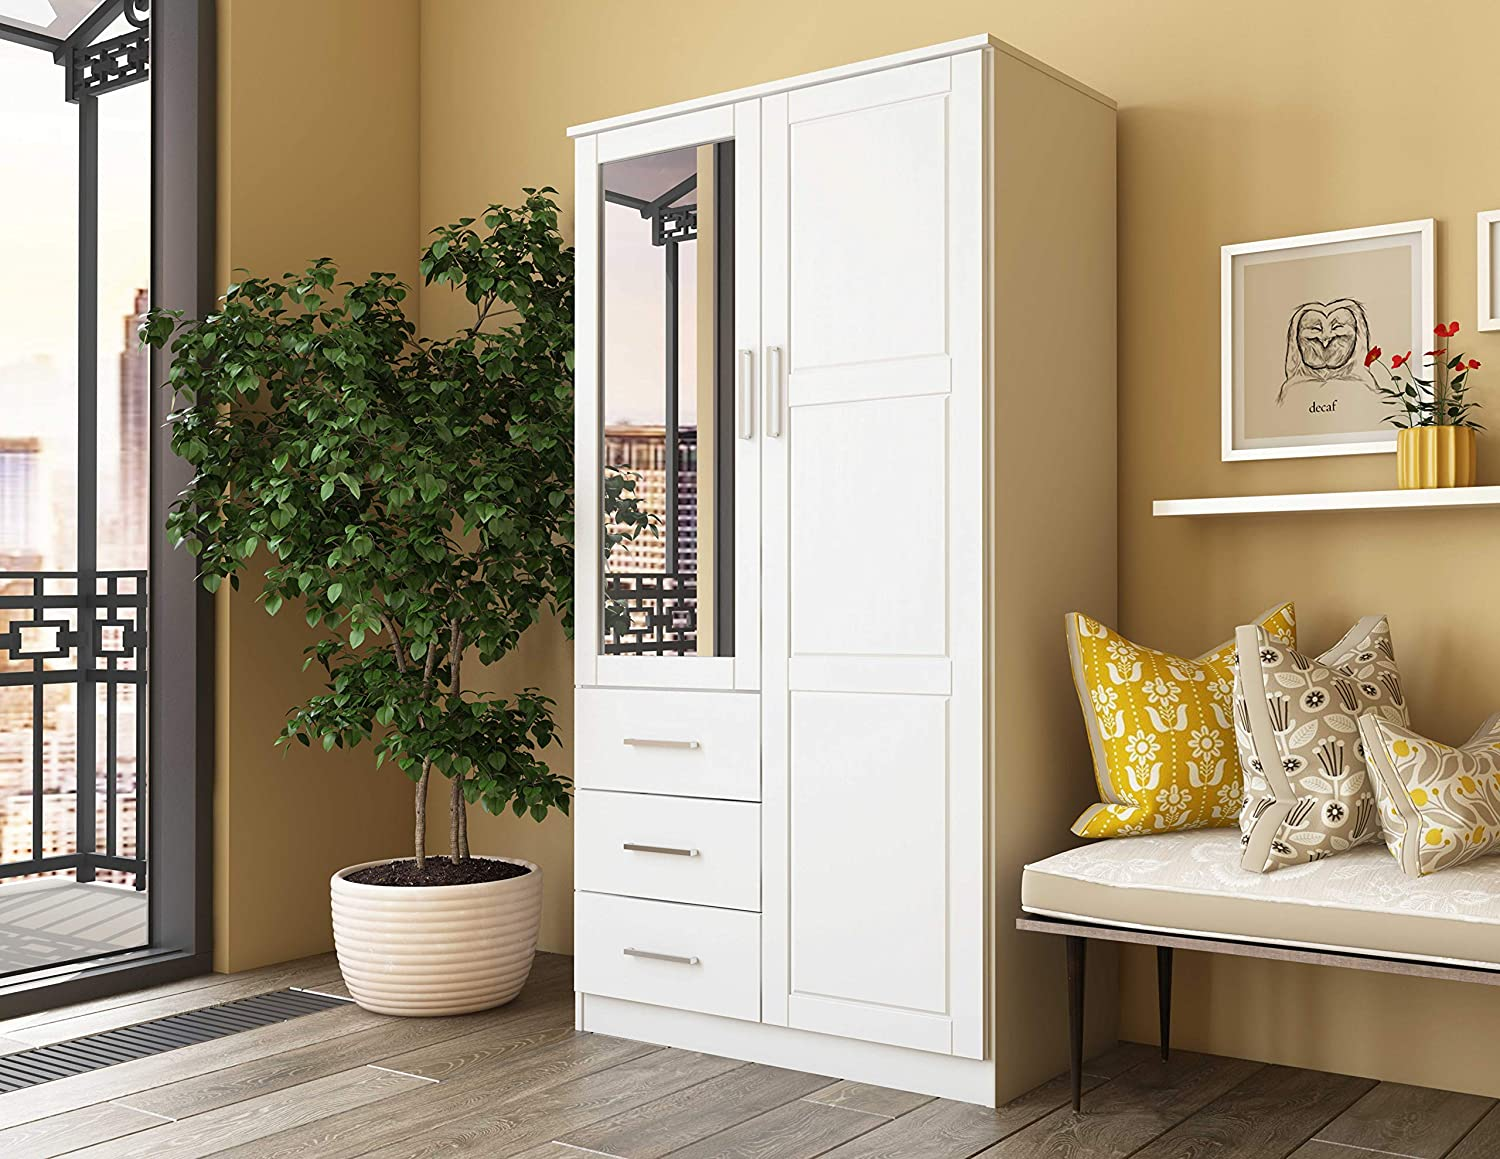 Metro Solid Pine Wood Wardrobe Armoire Closet with Mirror and 3 Drawers 7101 White by Palace Imports, 38 w x 21 d x 72 h. Optional Additional Shelves Sold Separately. Requires Assembly.